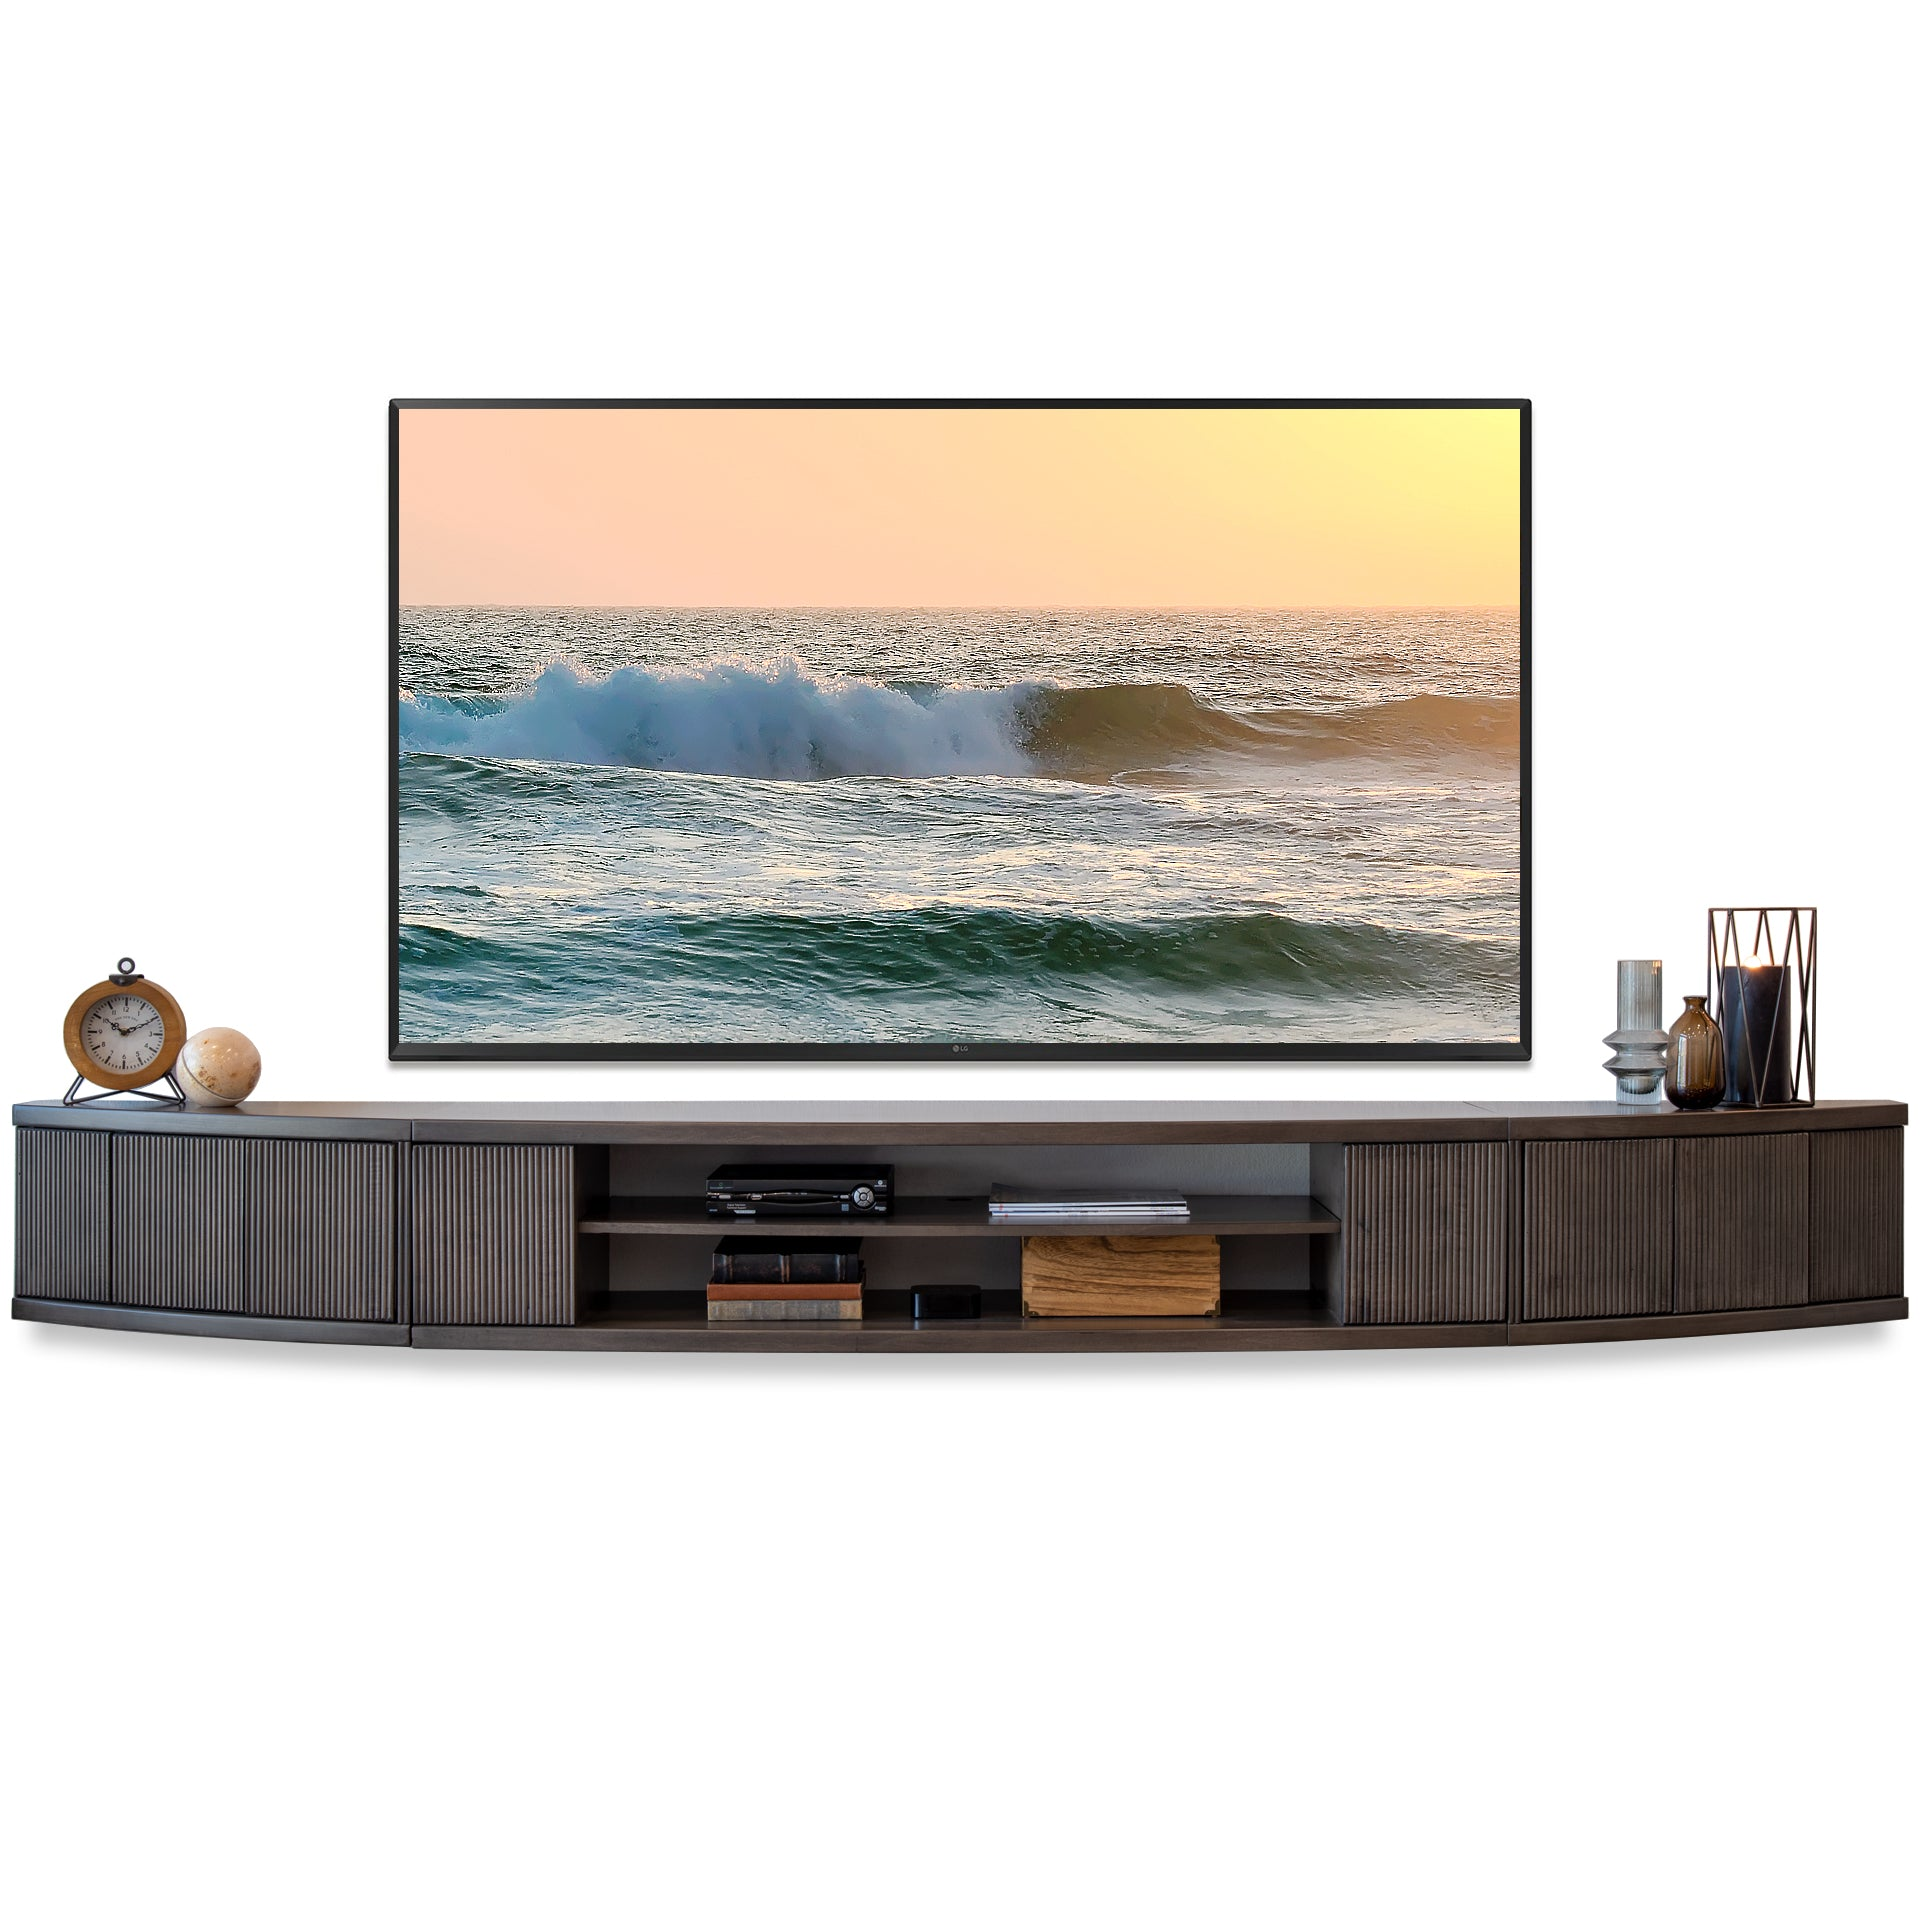 Gray Floating TV Stand Wall Mount Entertainment Center Console - Arc - Greystone